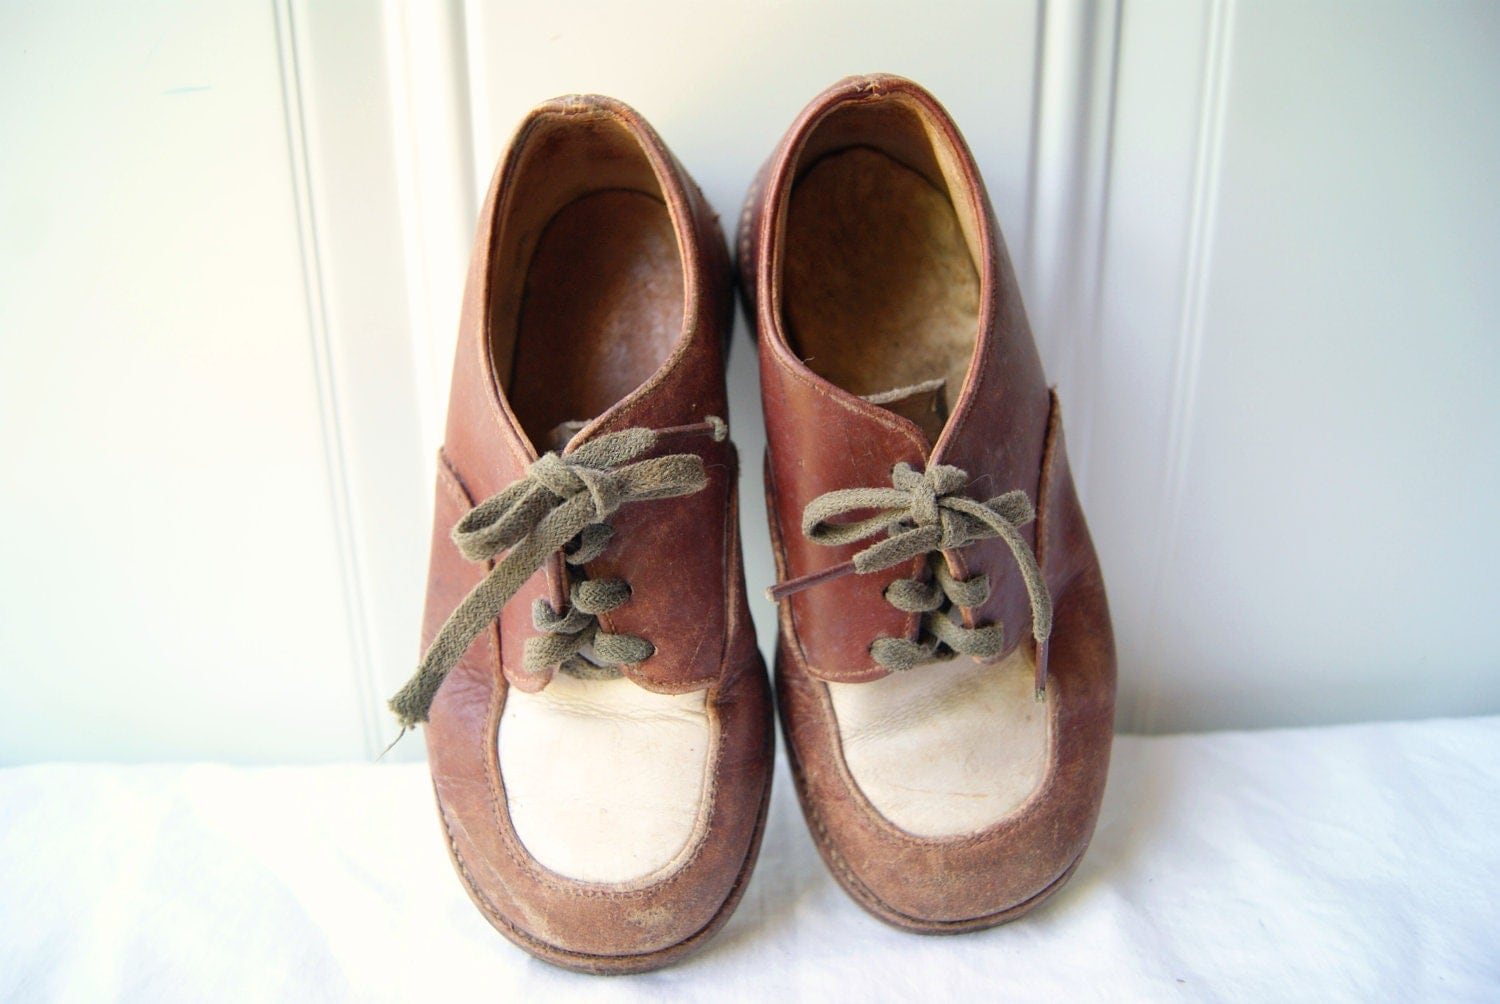 Old Vintage 1950s Brown Leather Toddler Shoes - EmeraldRooster